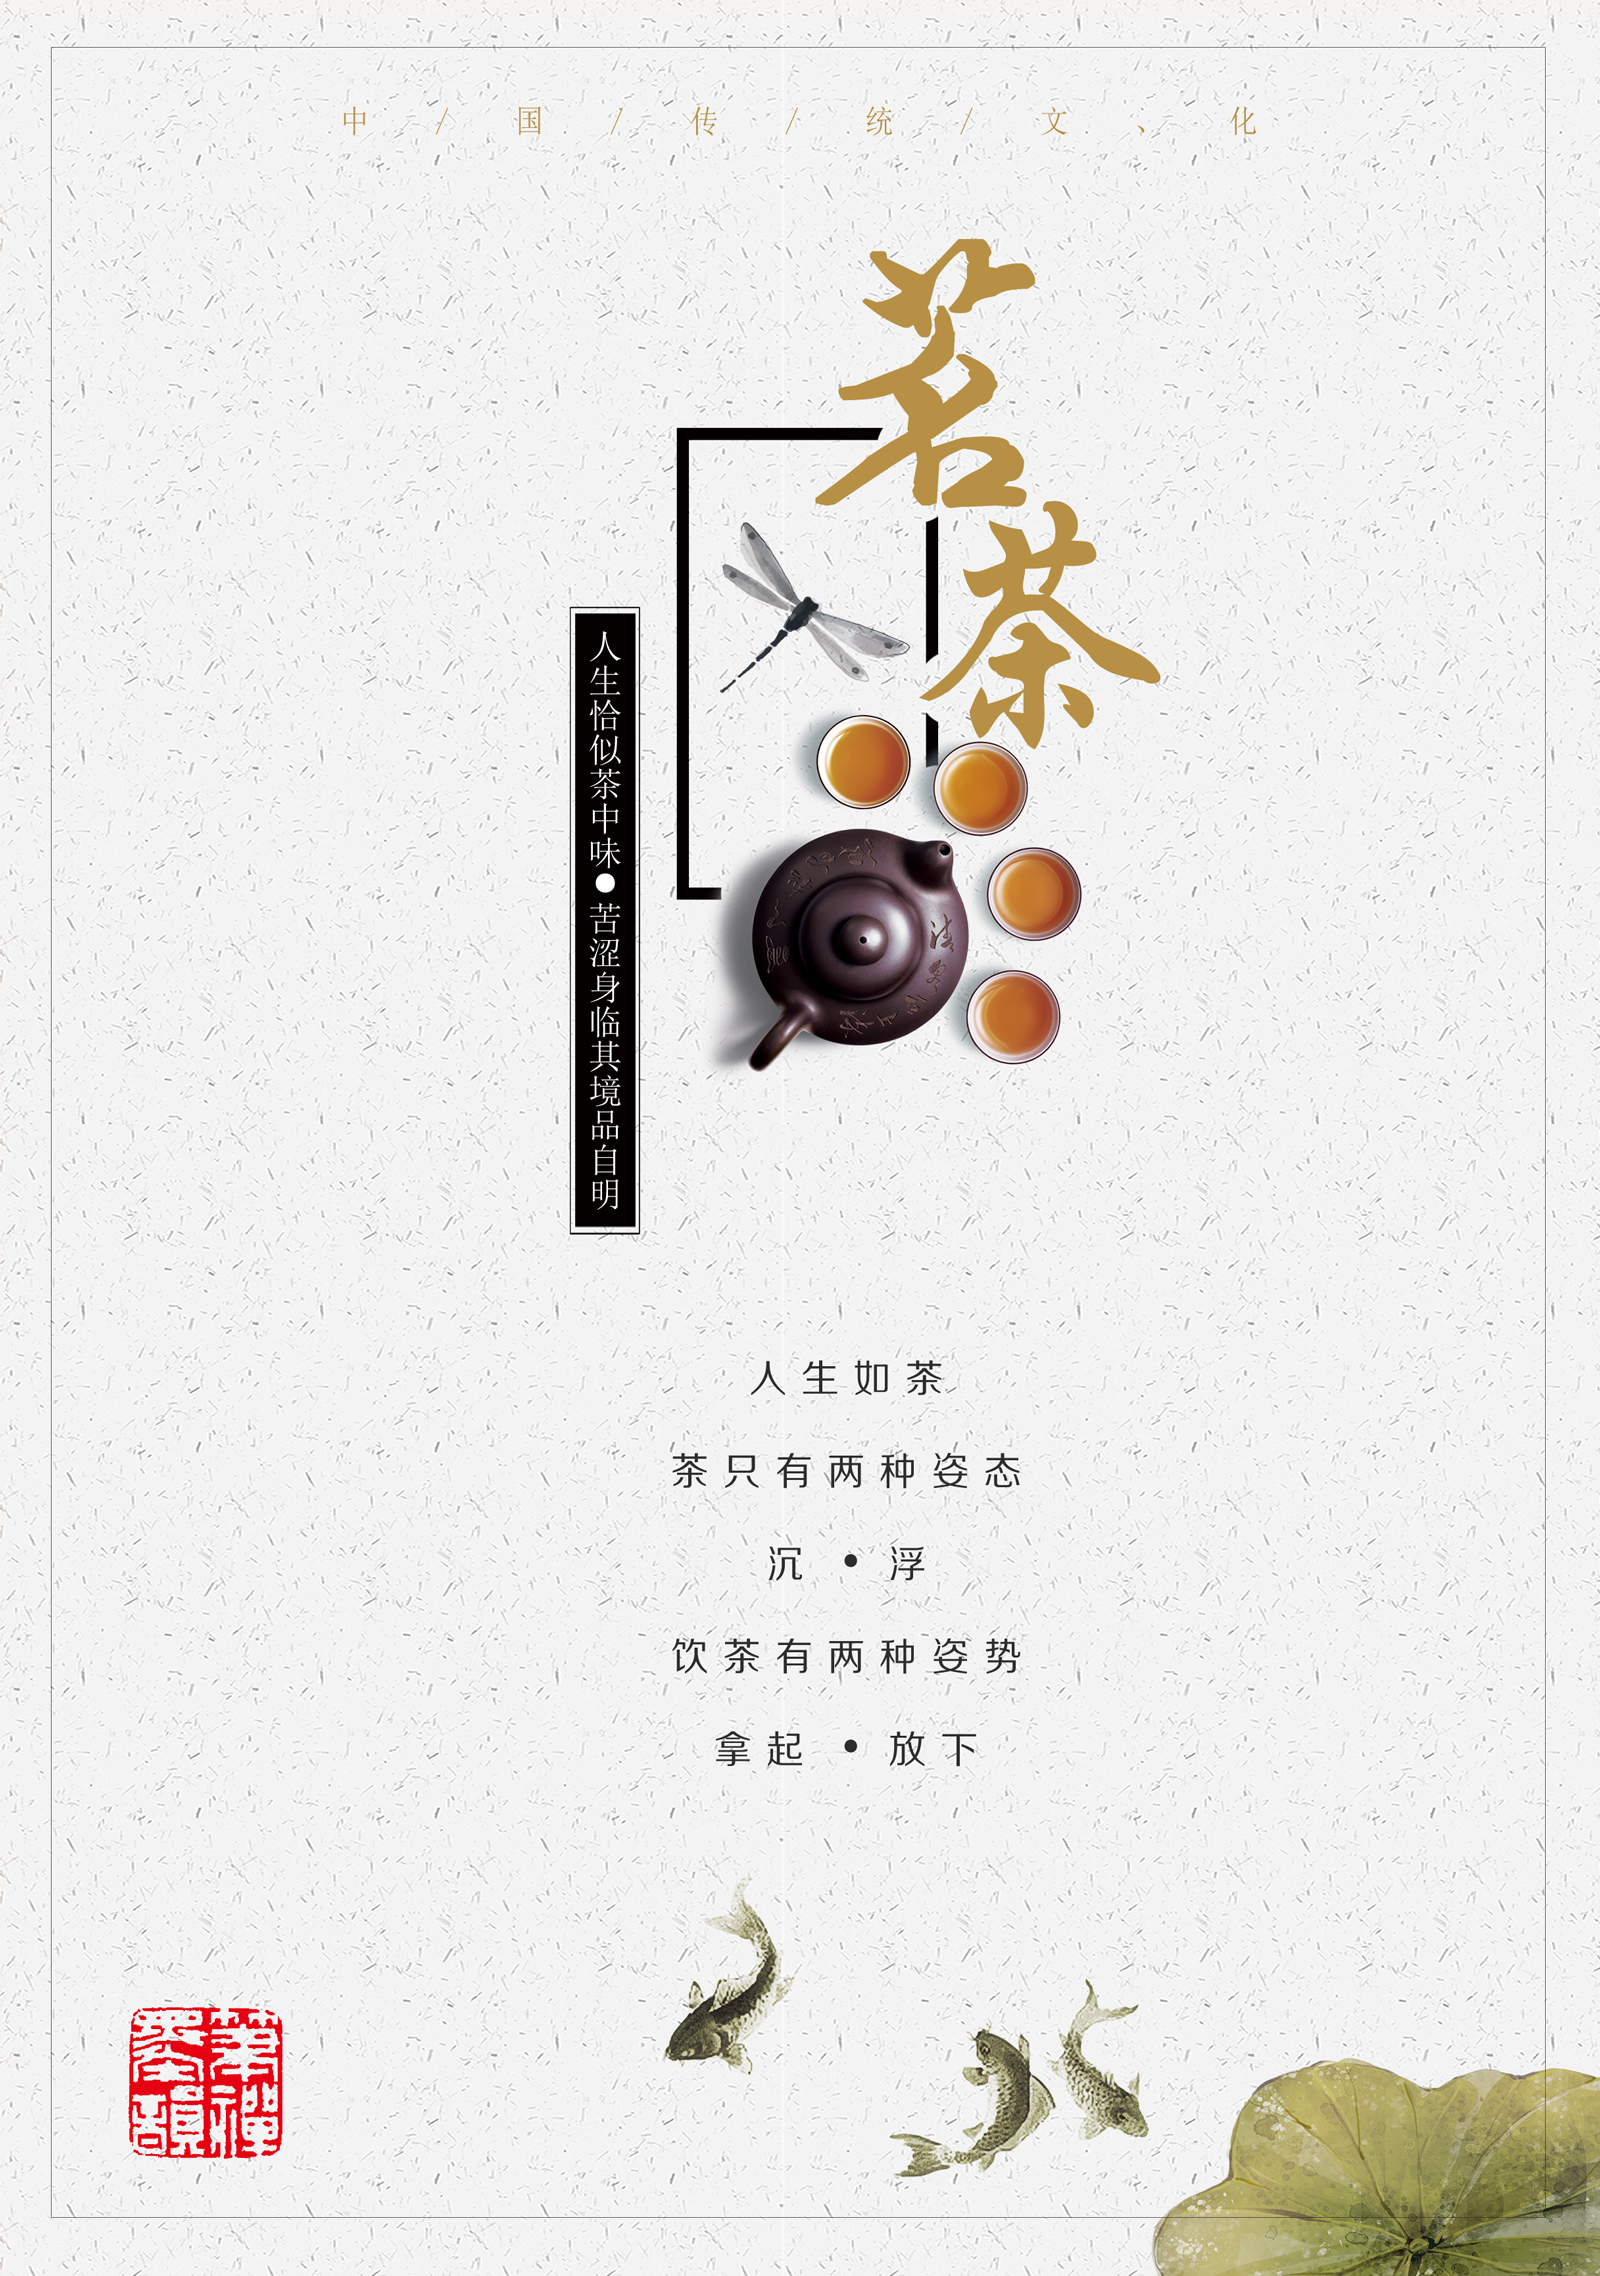 chinesefontdesign.com 2017 04 01 18 46 47 China s new tea advertising   PSD File Free Download tea psd Chinese tea culture china tea psd